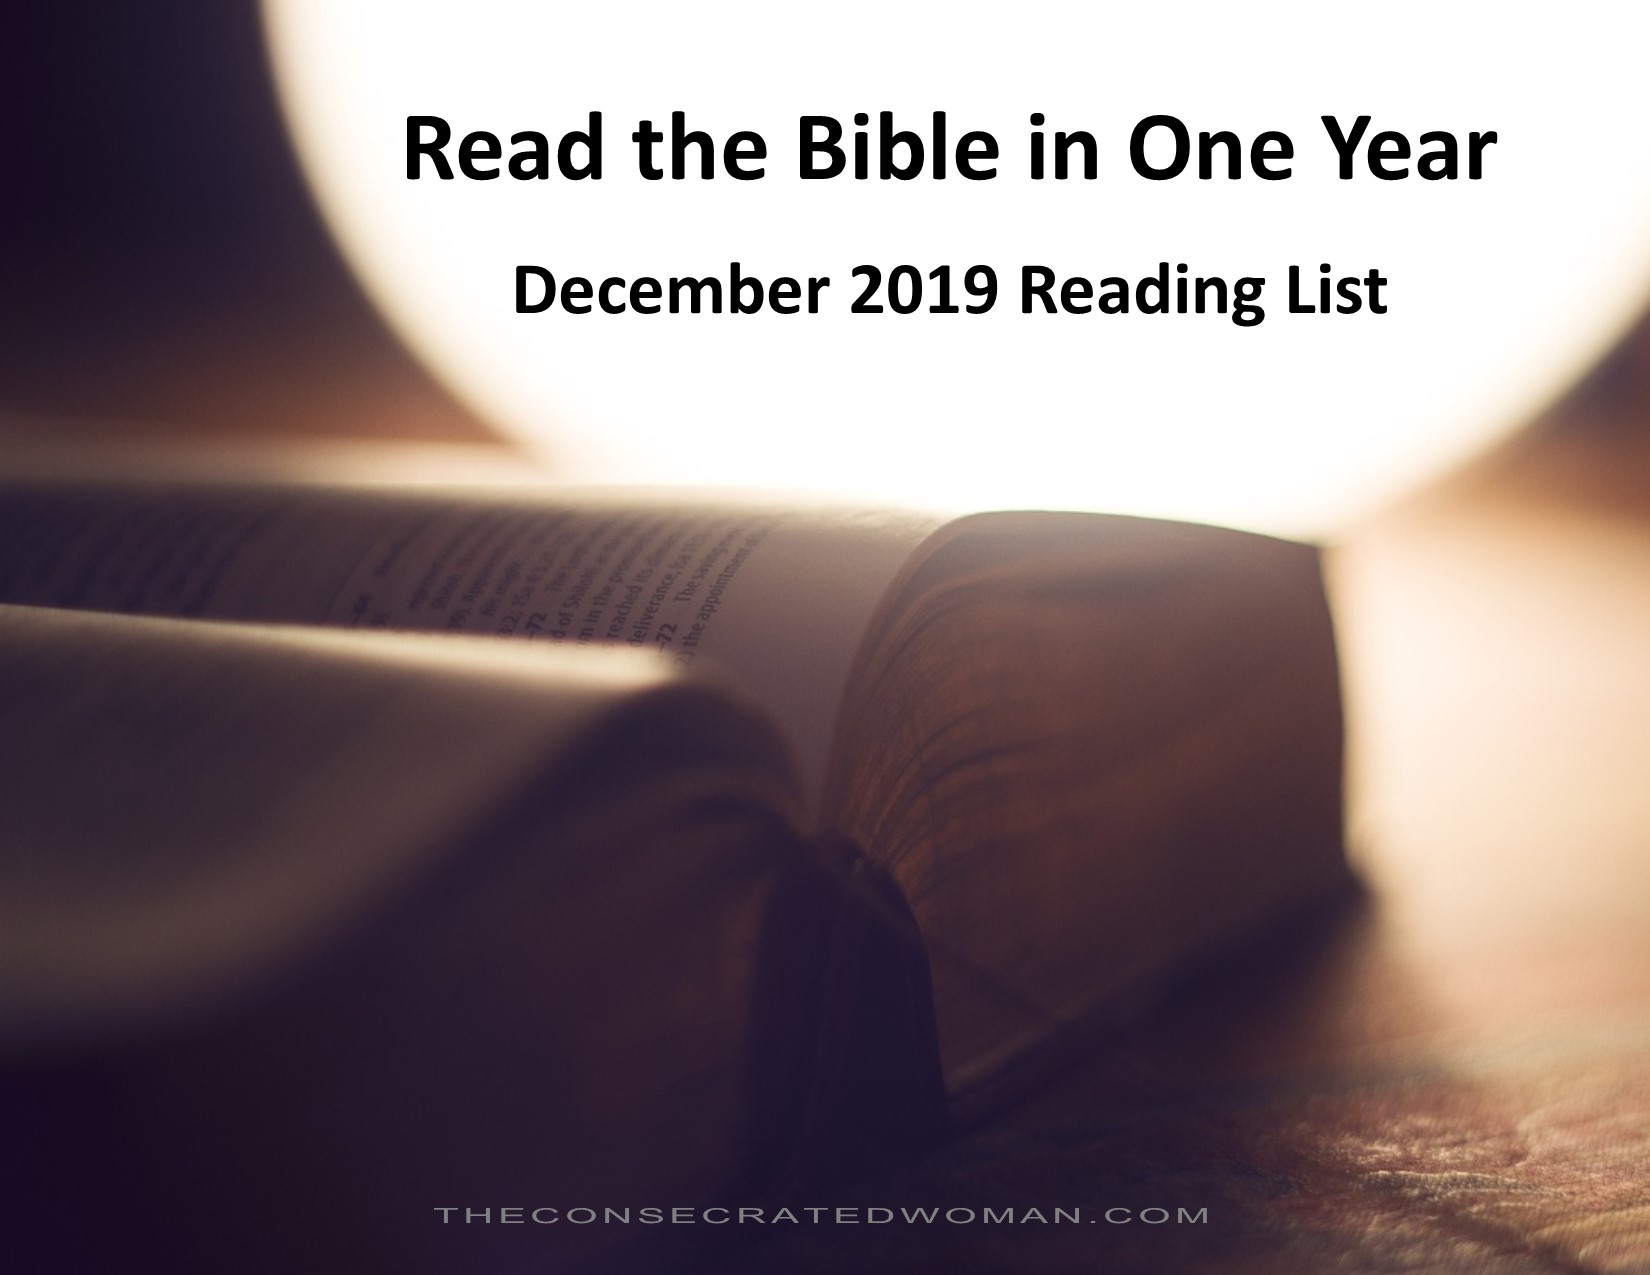 12 December Read the Bible in One Year Image.jpg